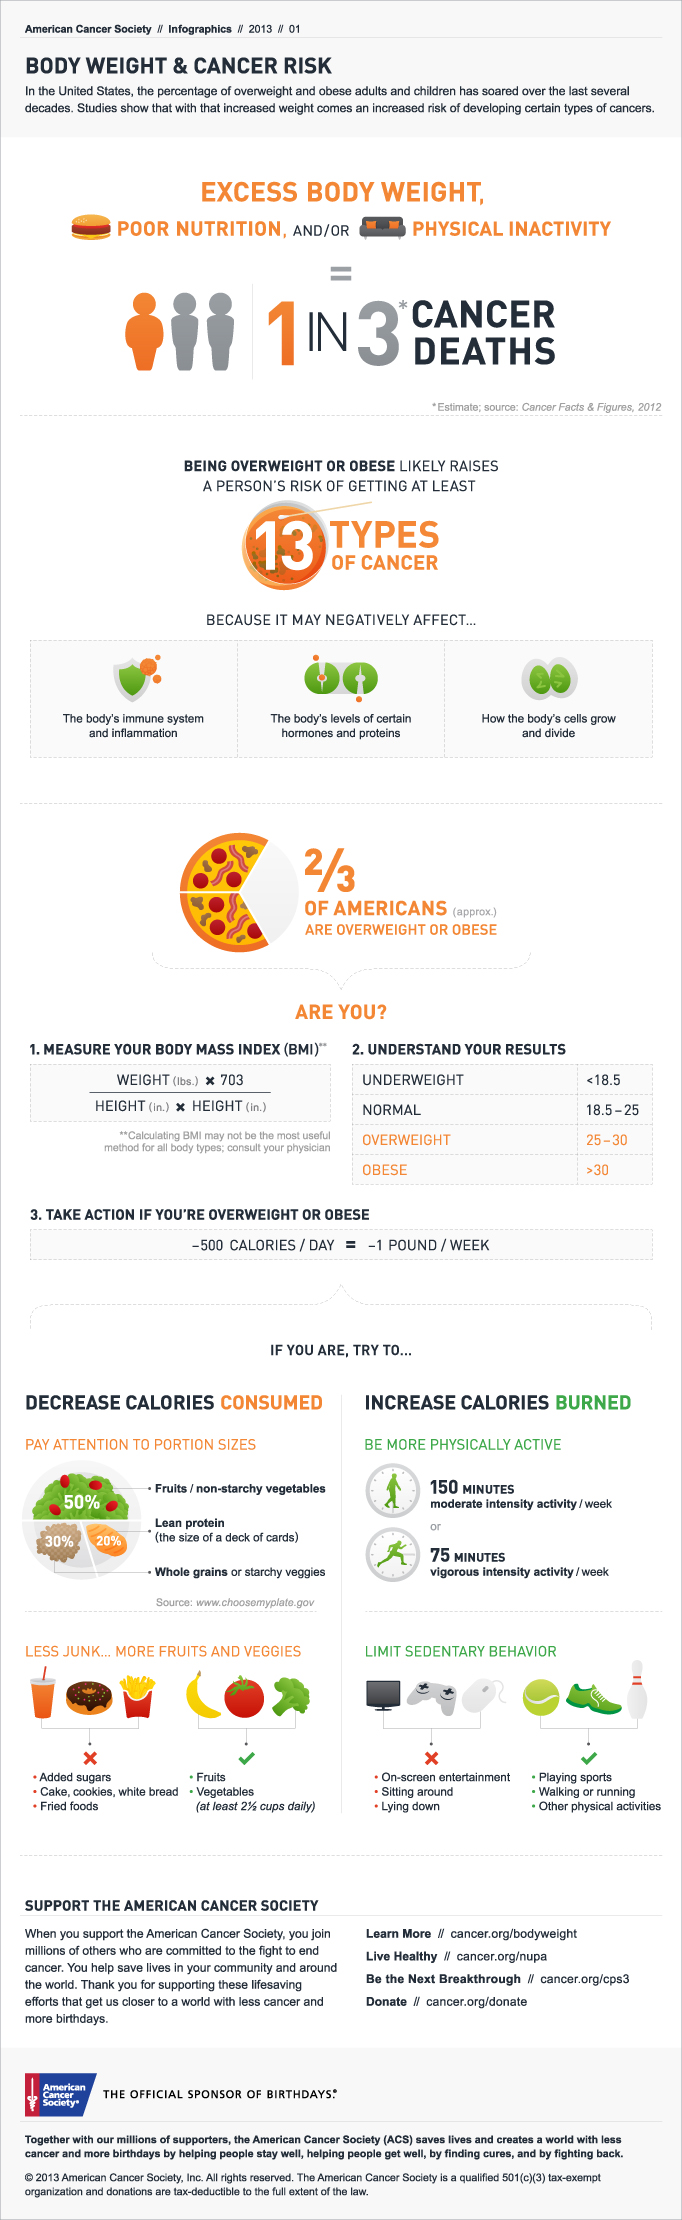 Body Weight and Cancer Risk Infographic - full